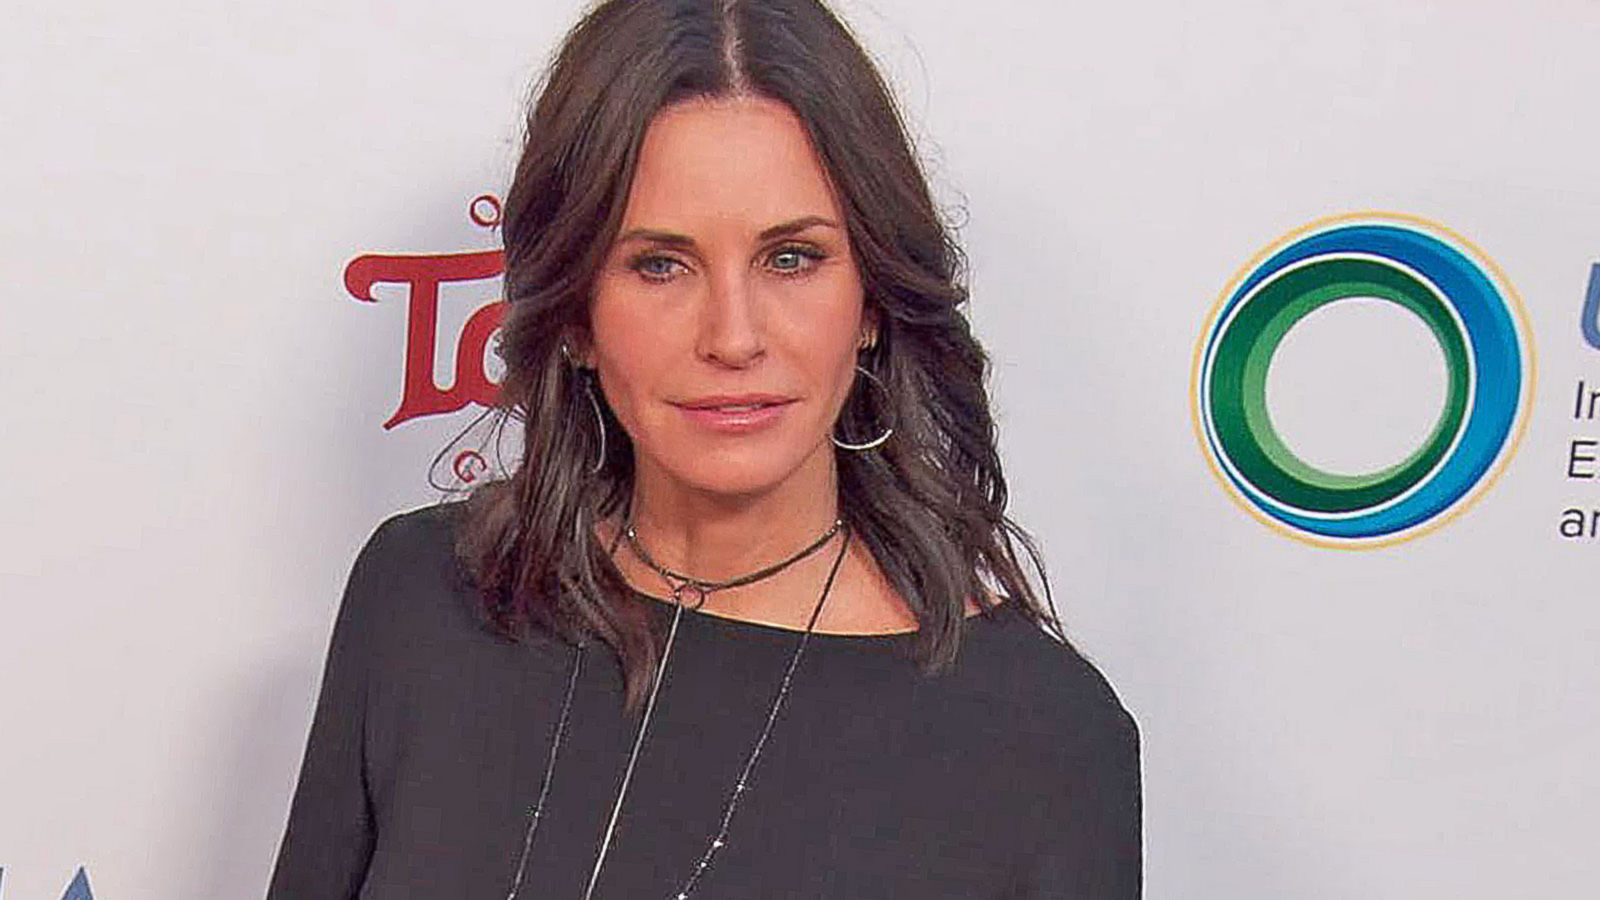 VIDEO: Courtney Cox Discusses Struggles With Hollywood's Beauty Standards